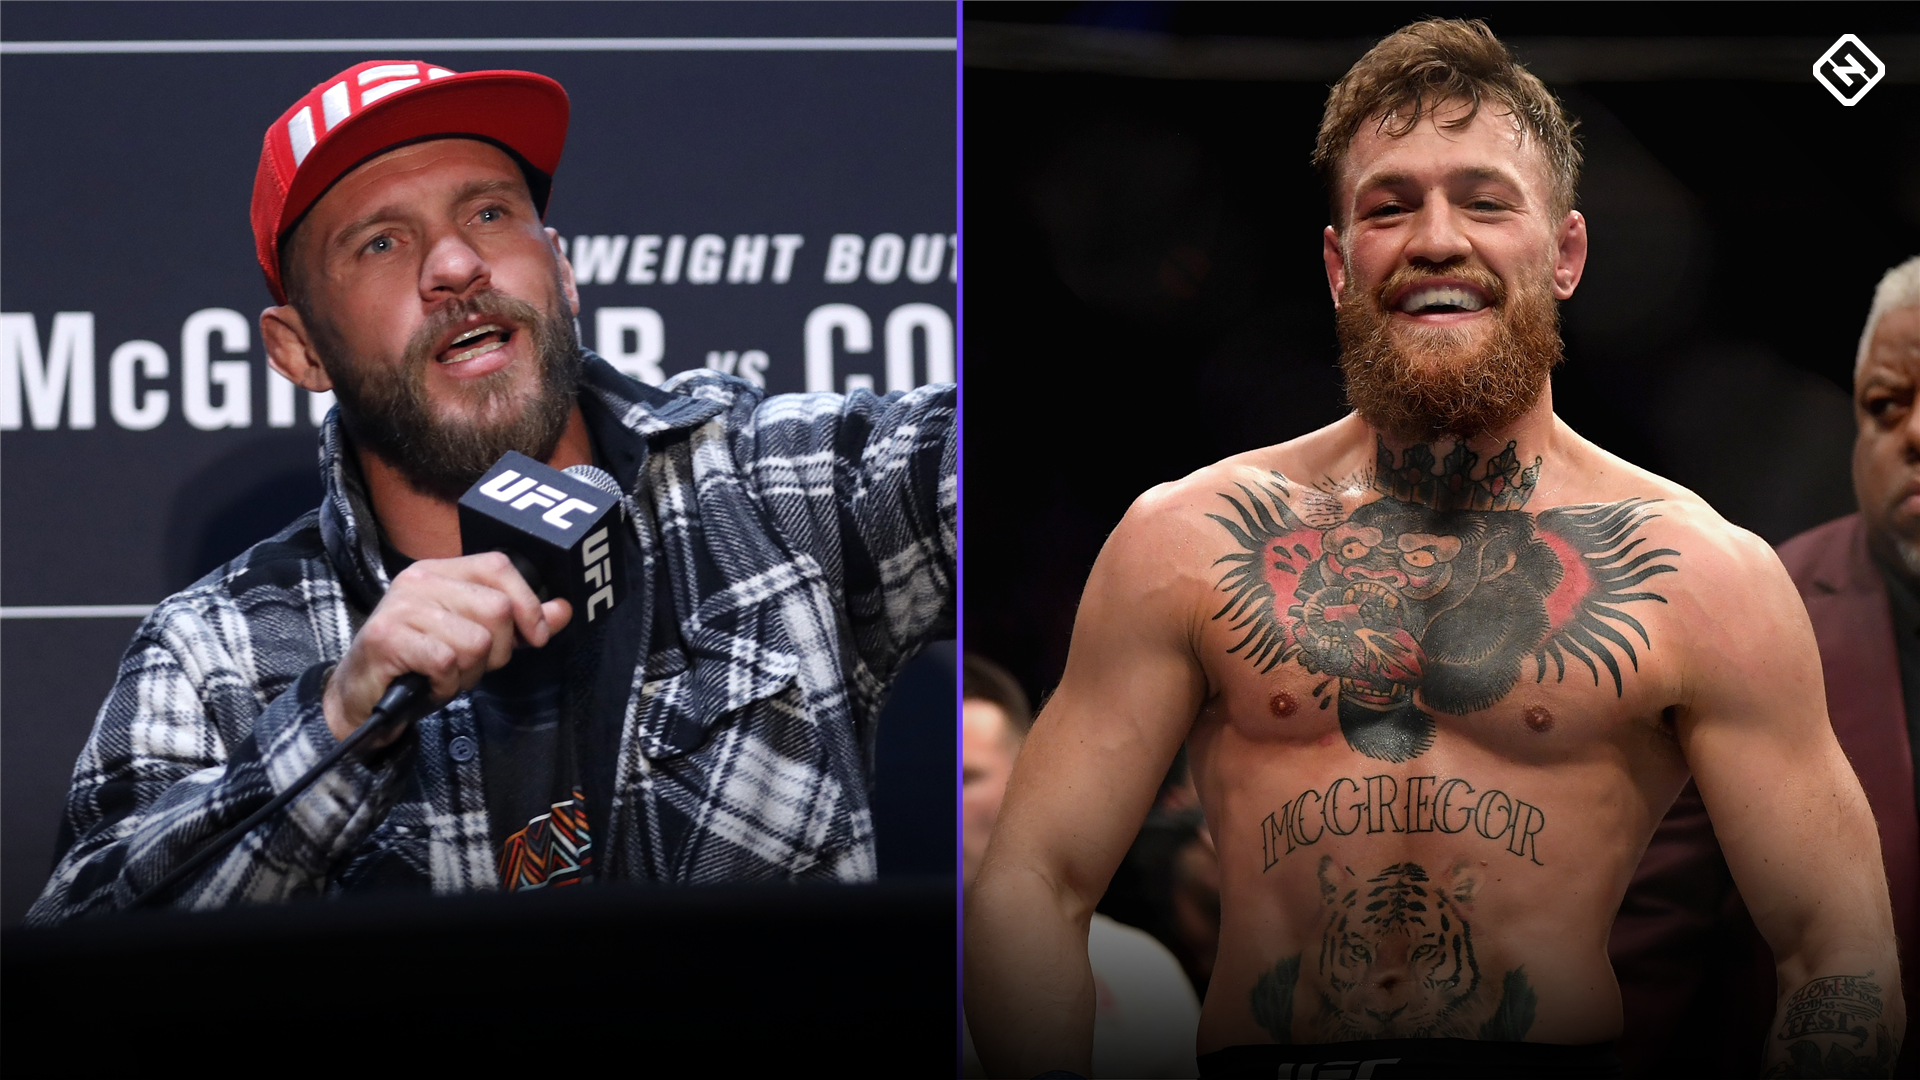 Conor McGregor vs. Cowboy purse, salaries: How much money will they make at UFC 246?